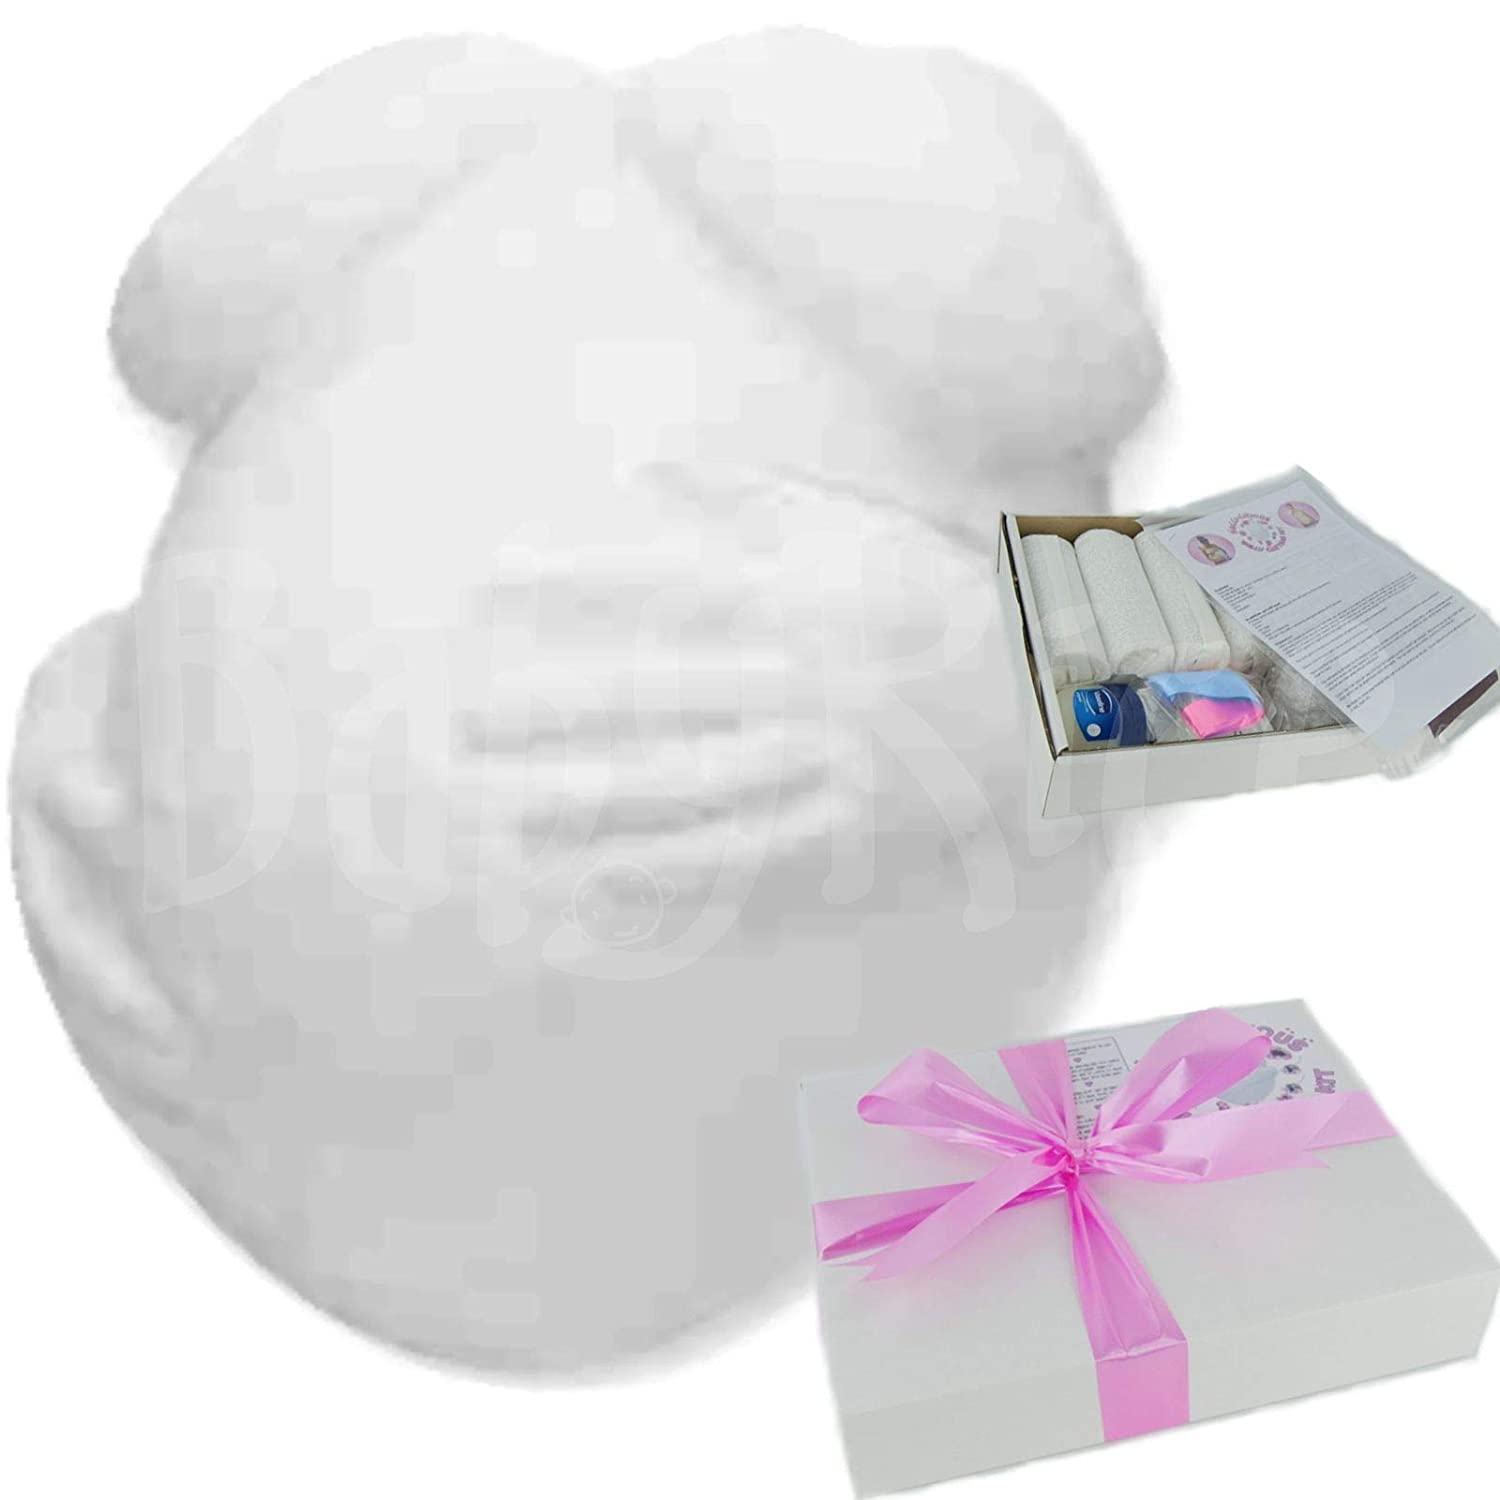 Pregnant Belly Casting Kit Pregnancy Bump Plaster Cast Gift Maternity Leave by BabyRice